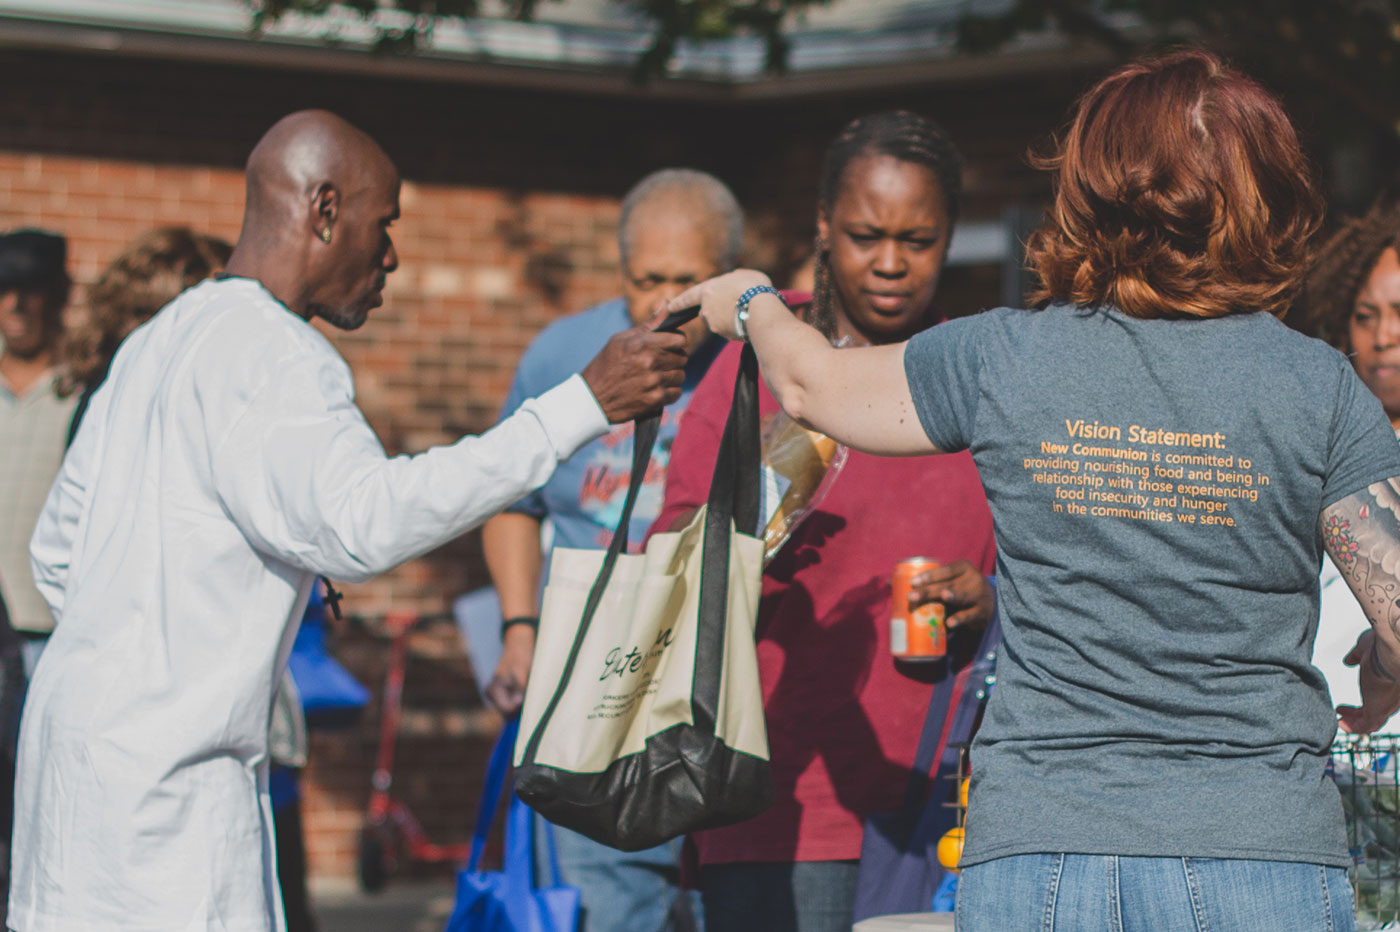 School of Divinity alumna Monica Banks, founder of New Communion Mobile Market and Pantry, hands out produce and other food at a local distribution effort in Winston-Salem North Carolina